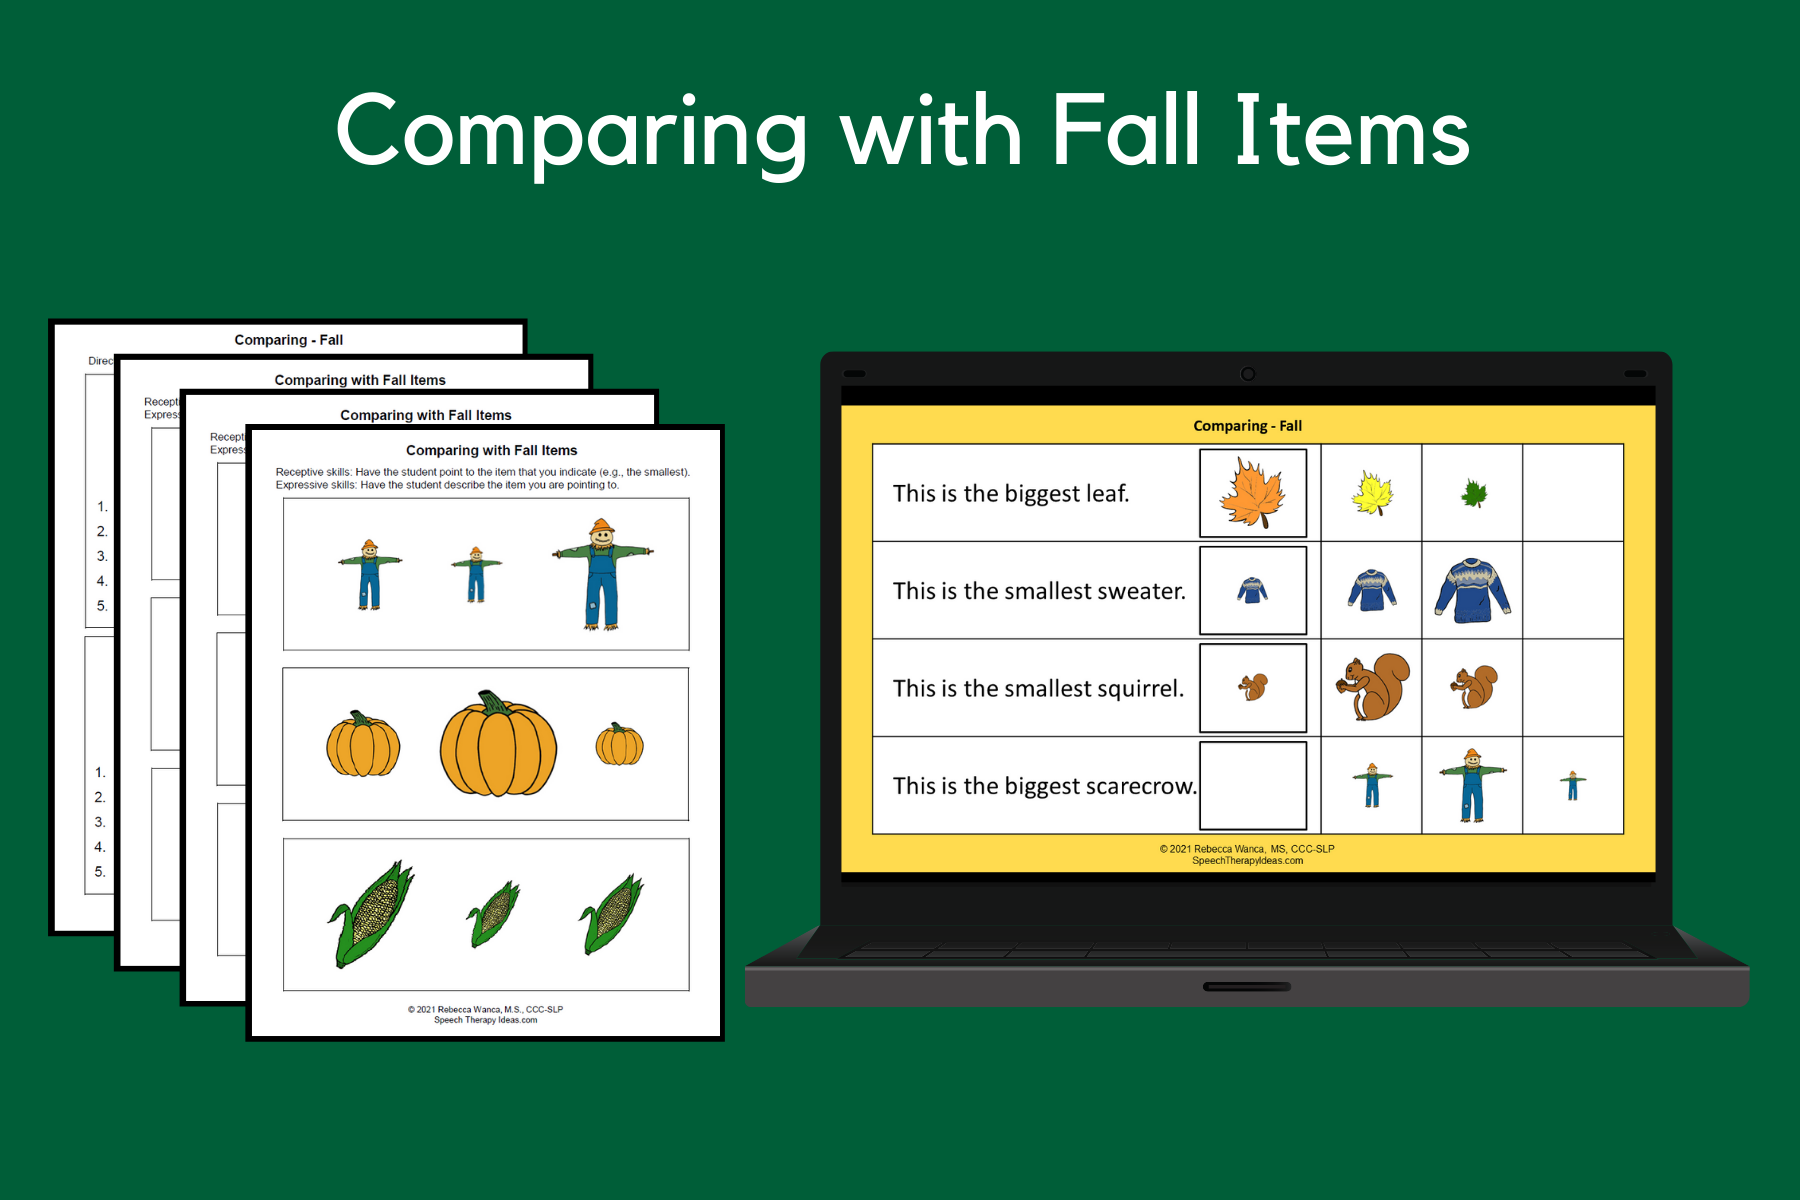 Comparing with Fall Items